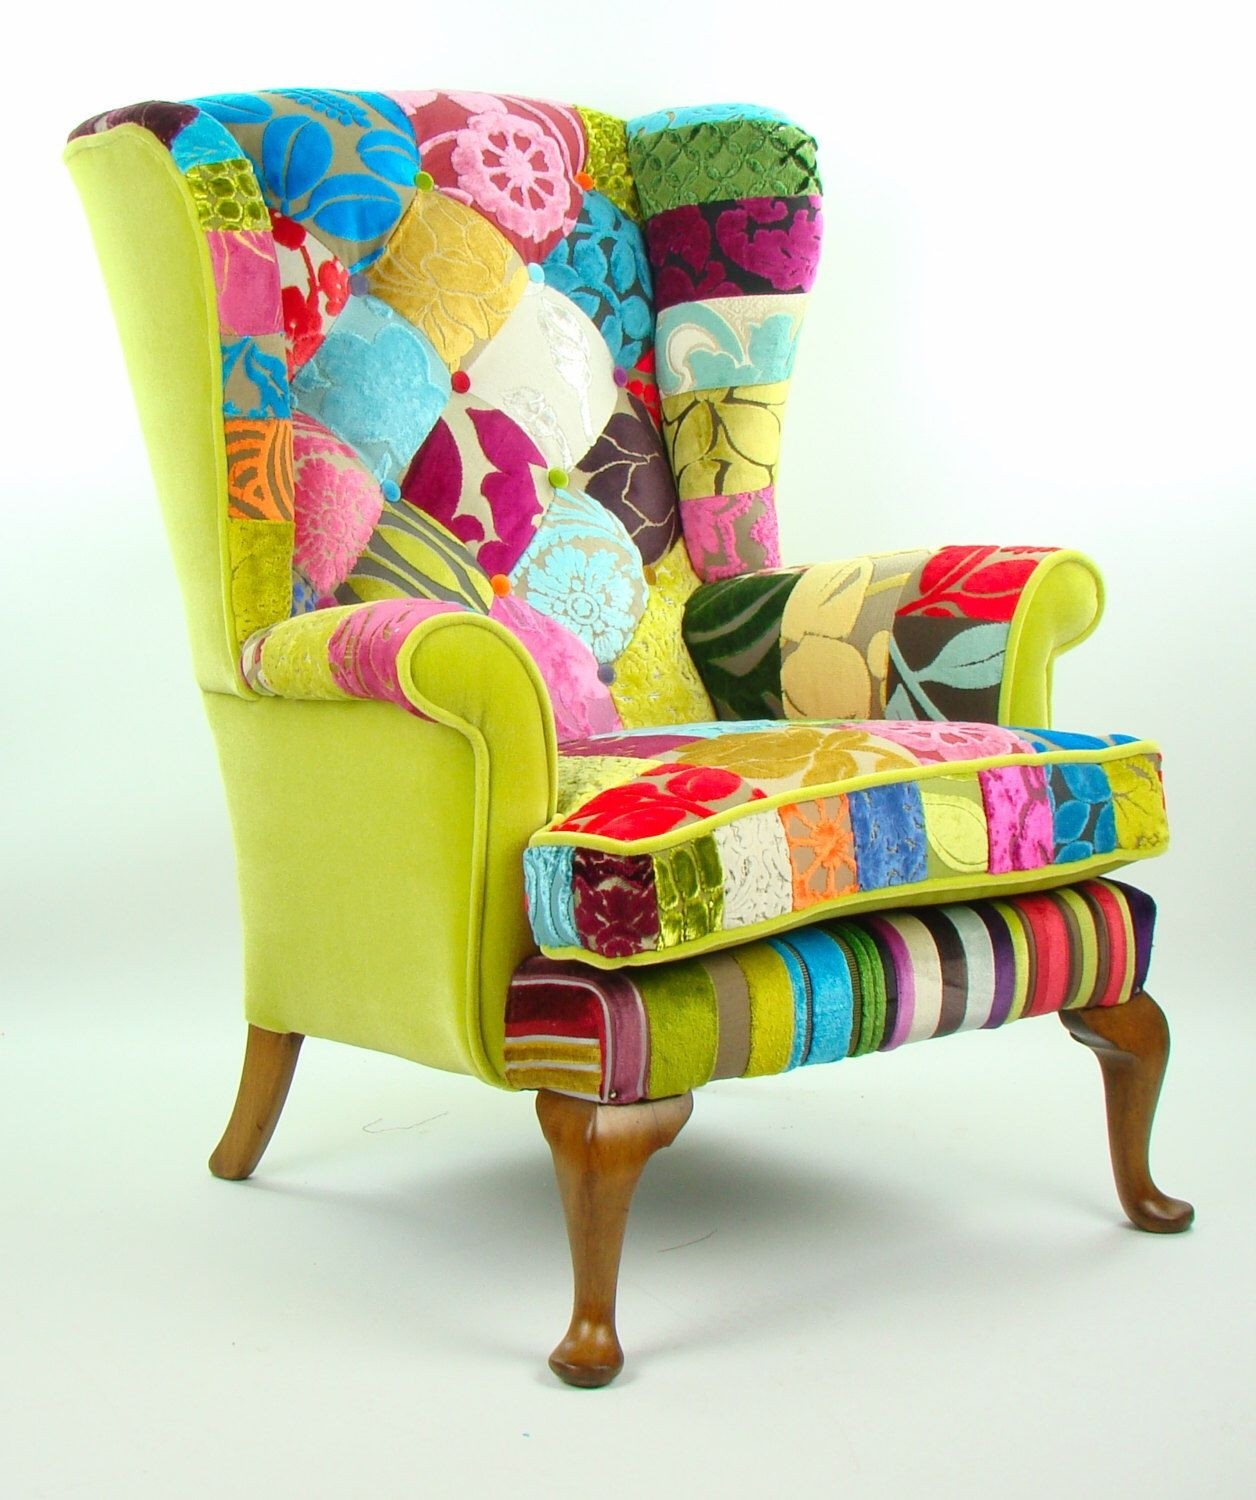 Ordinaire Bespoke Patchwork Armchair In Designer